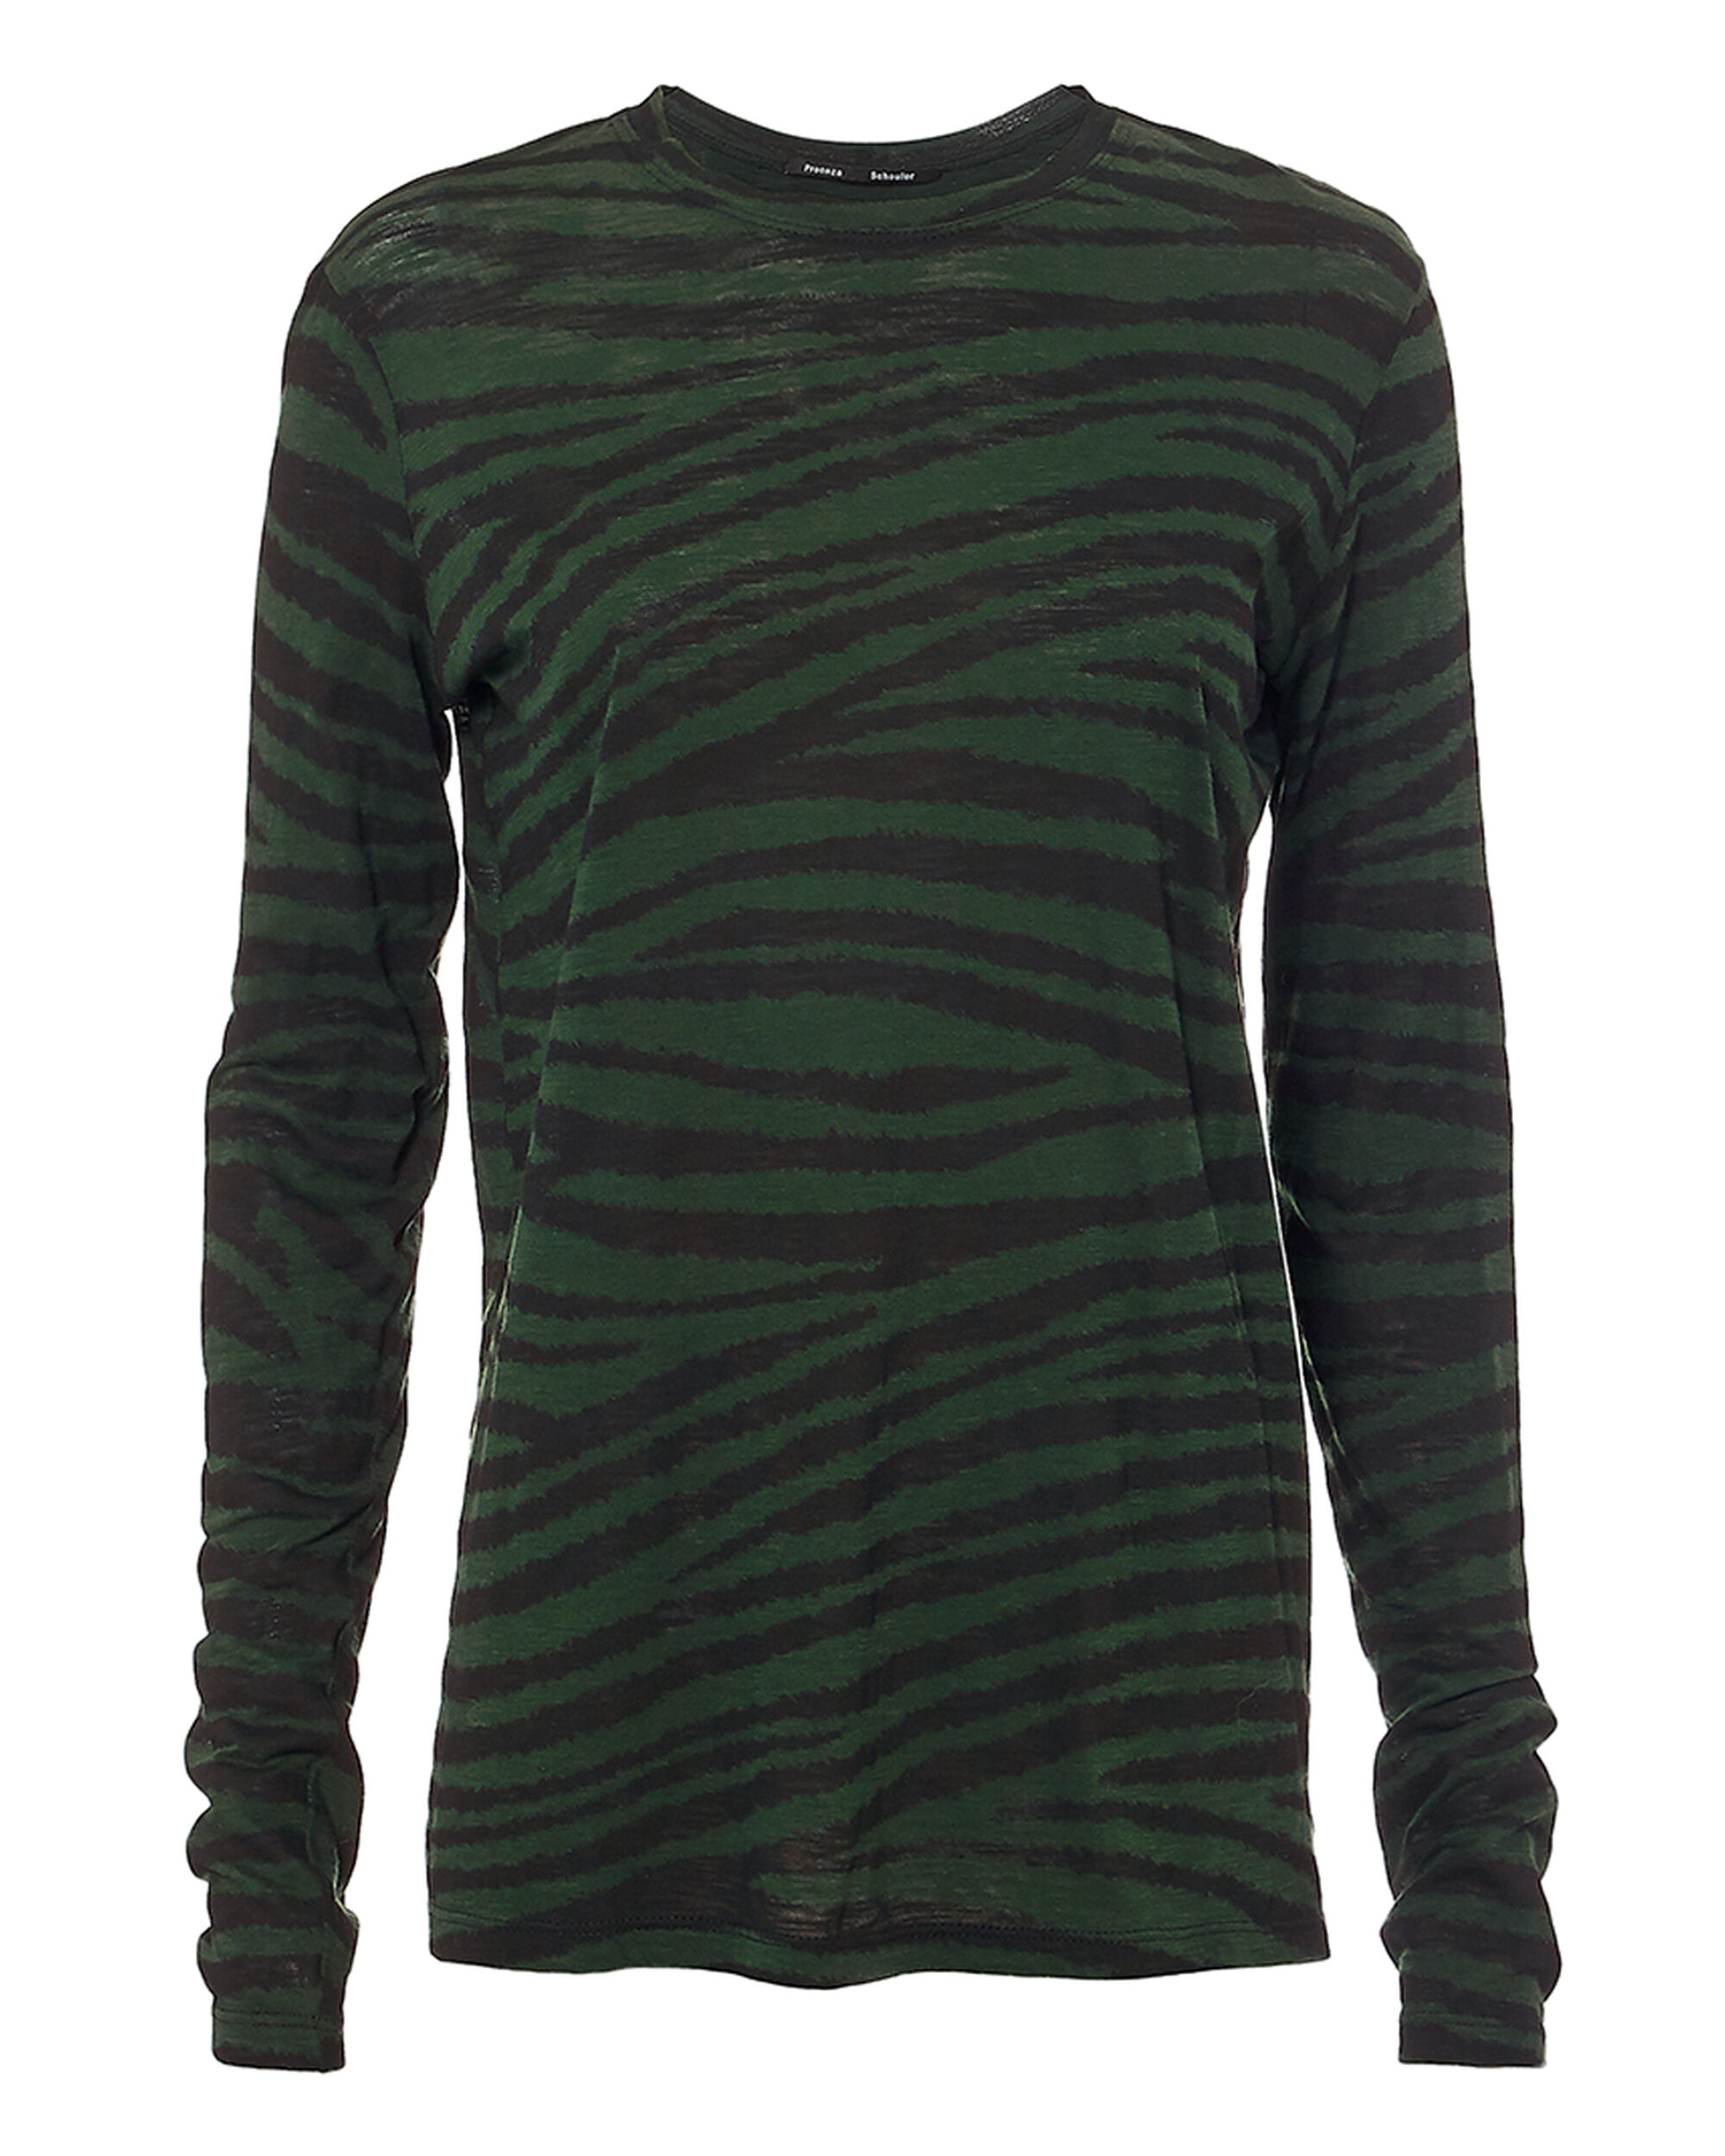 Tiger Printed Tissue Tee, GREEN, hi-res